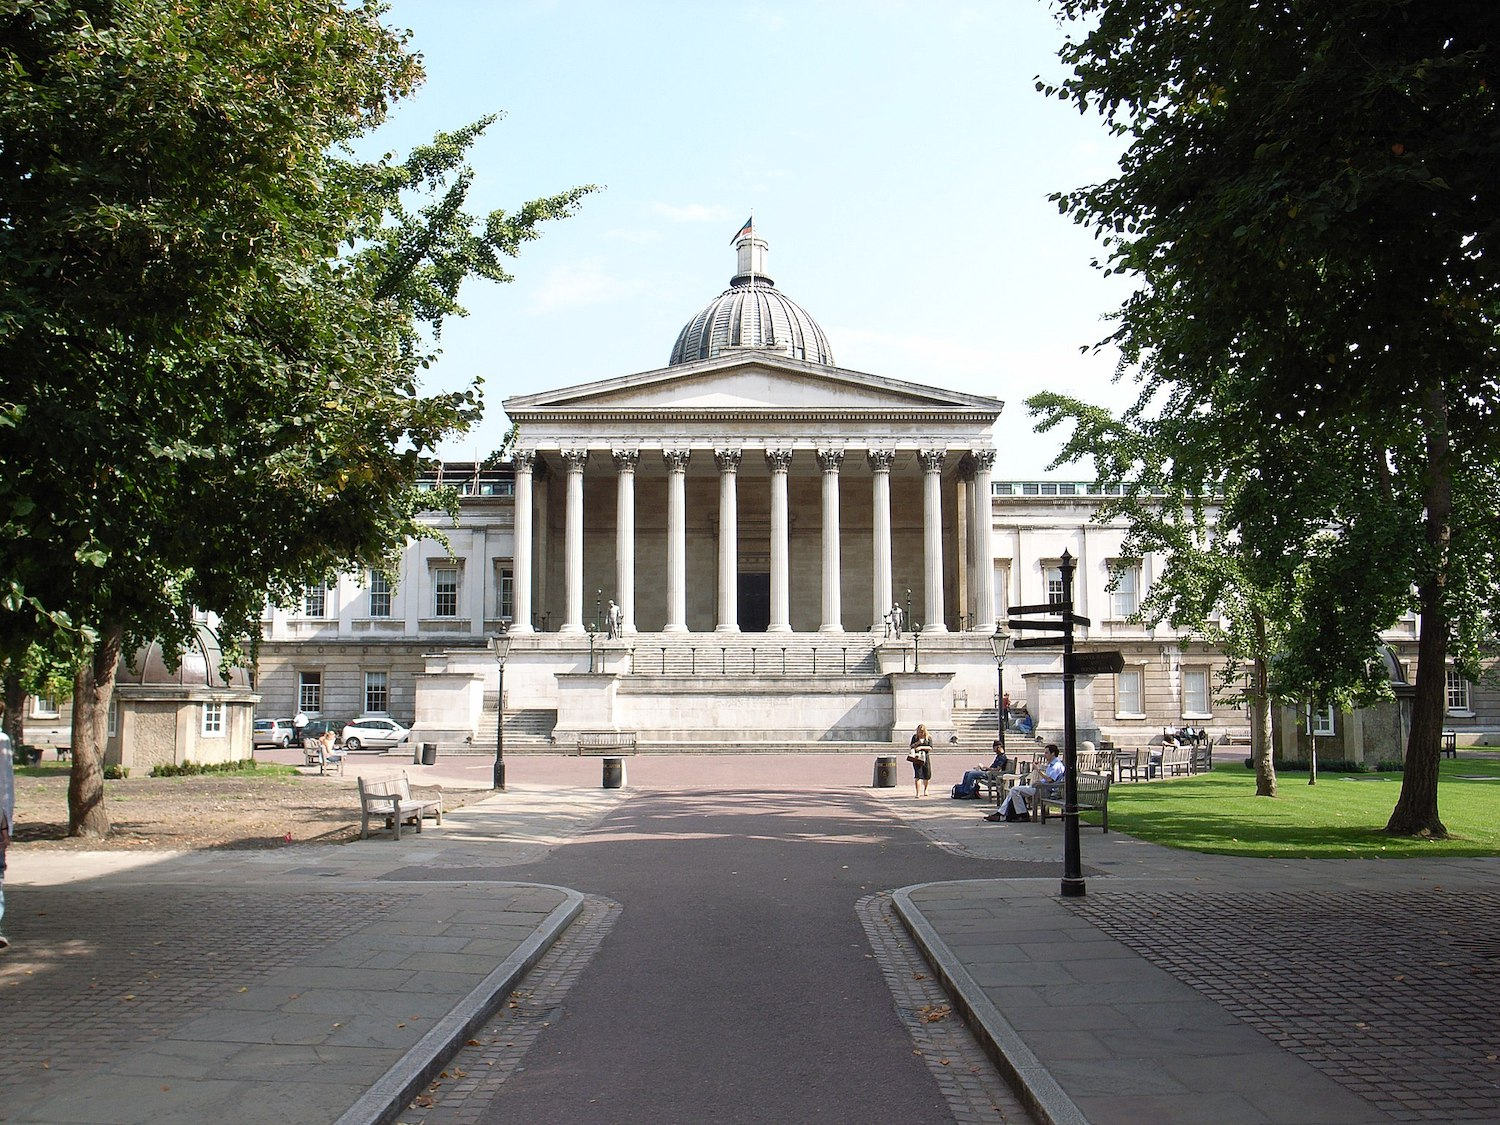 2048px-University_College_London,_by_William_Wilkins